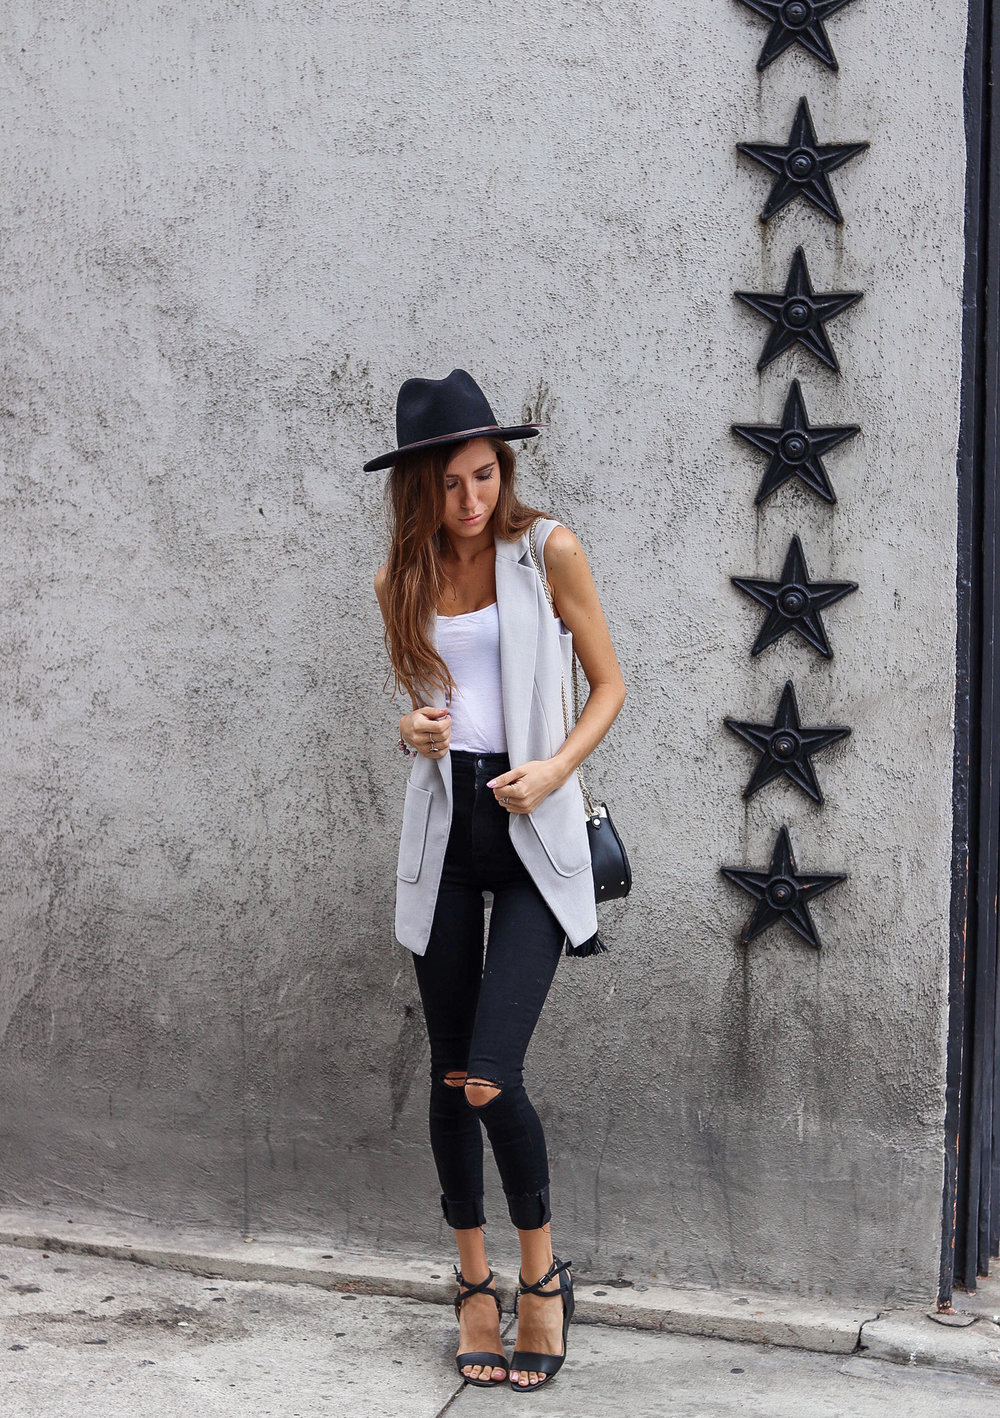 The Hungarian Brunette Outfit Inspo - OOTD sleeveless vest  outfit